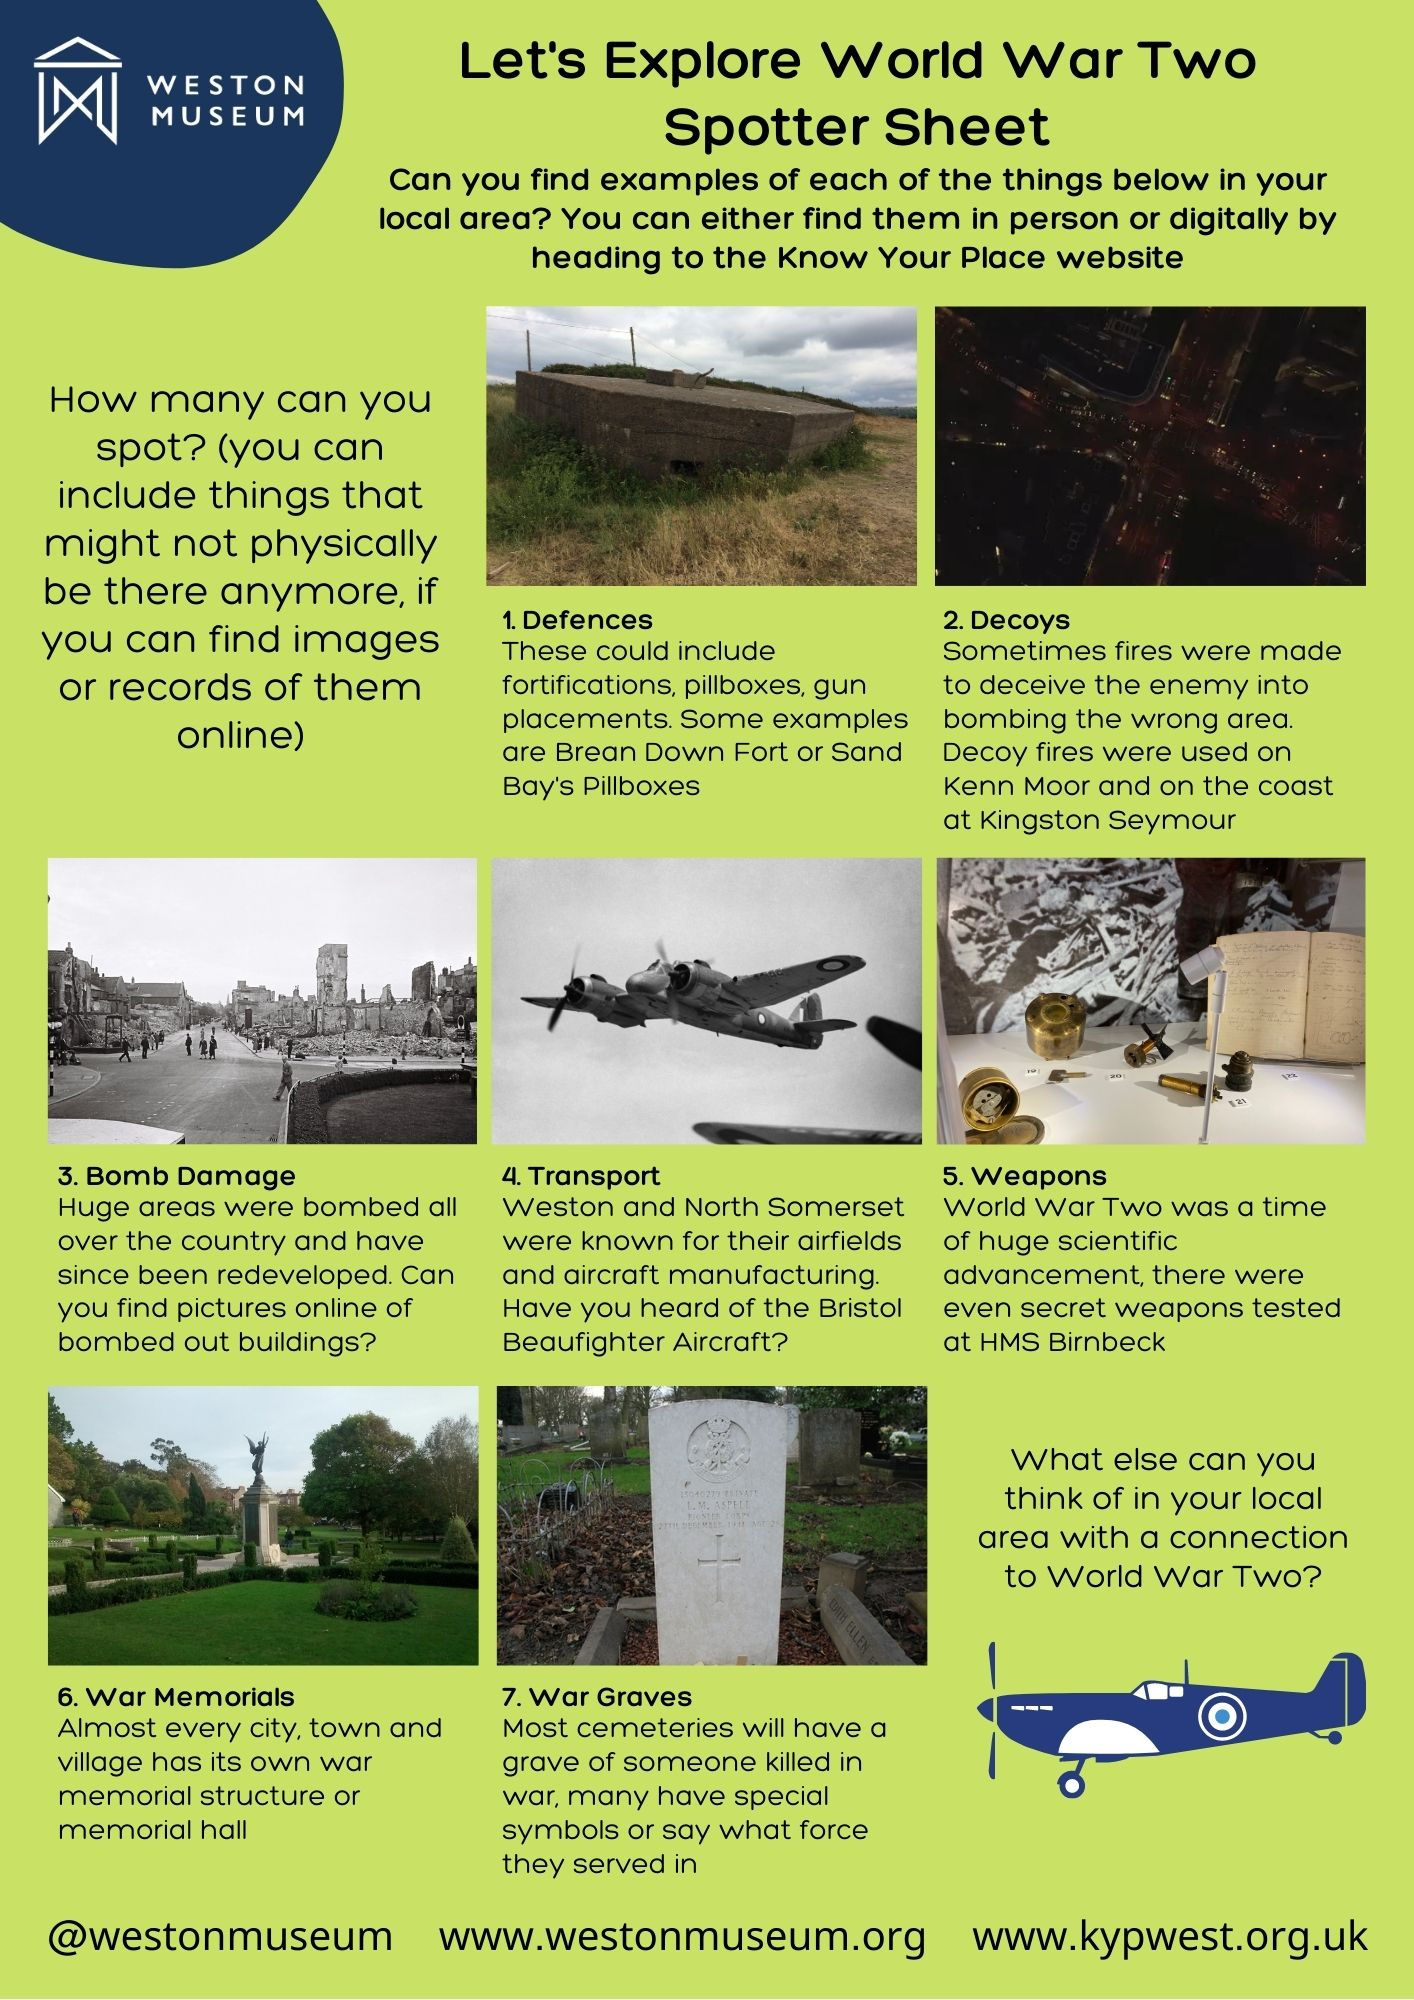 Spotter Sheet Lets Explore WW2